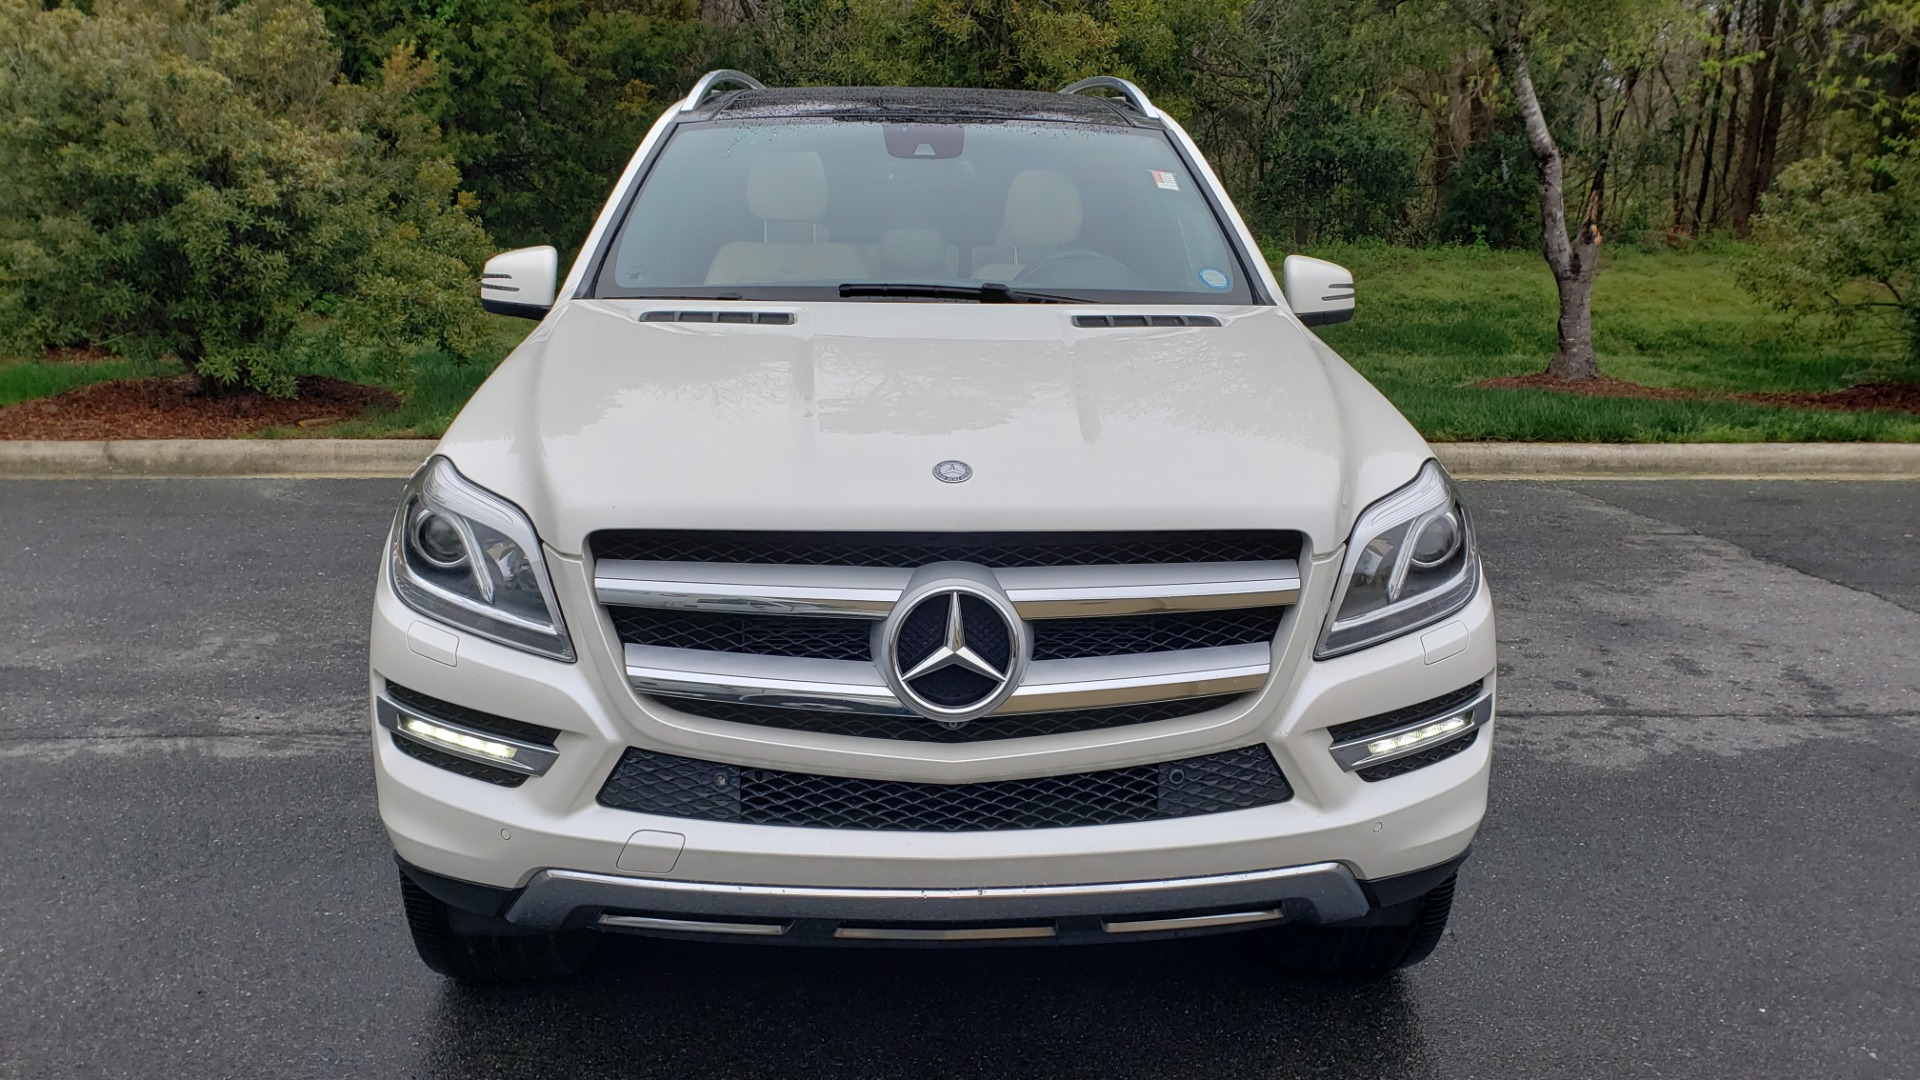 Used 2015 Mercedes-Benz GL-Class GL 450 4MATIC PREMIUM / NAV / PANO-ROOF / LANE TRACK / PARK ASST for sale Sold at Formula Imports in Charlotte NC 28227 21